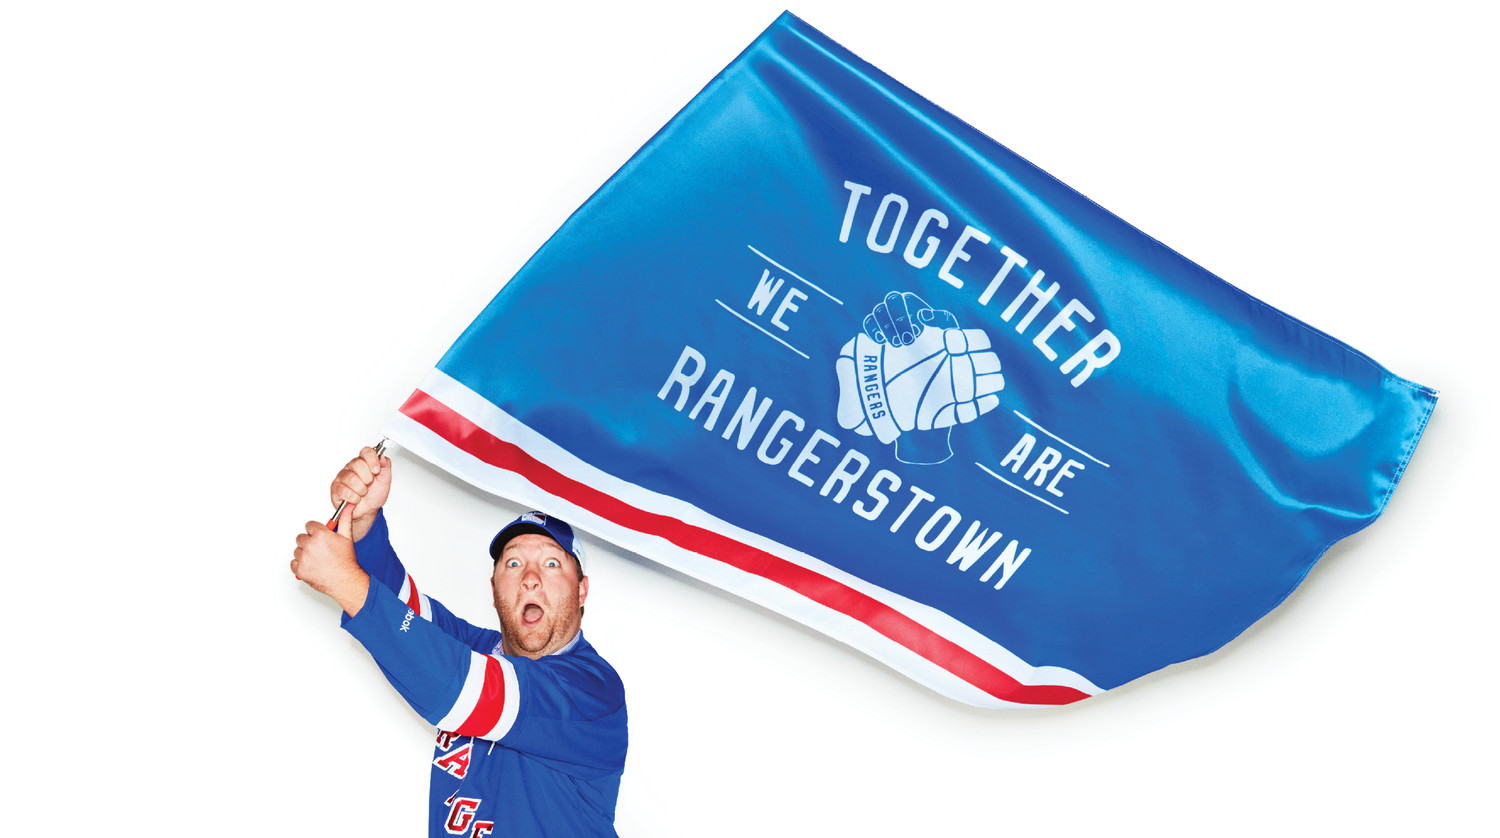 Rangers_personal_UPDATED4.png